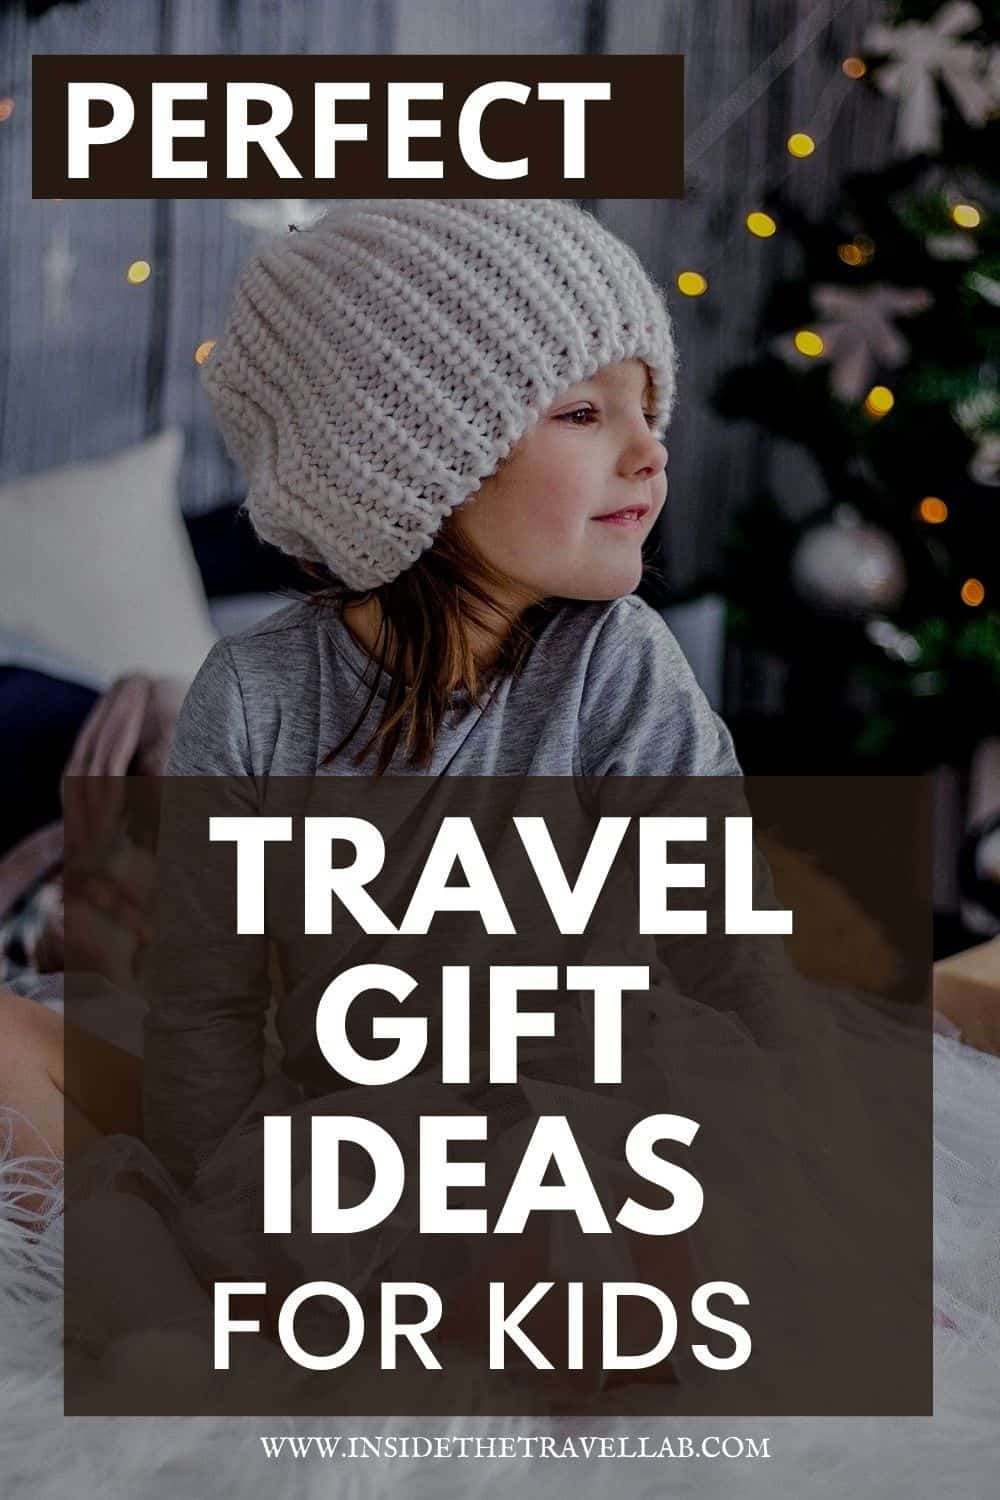 Perfect travel gift ideas for kids